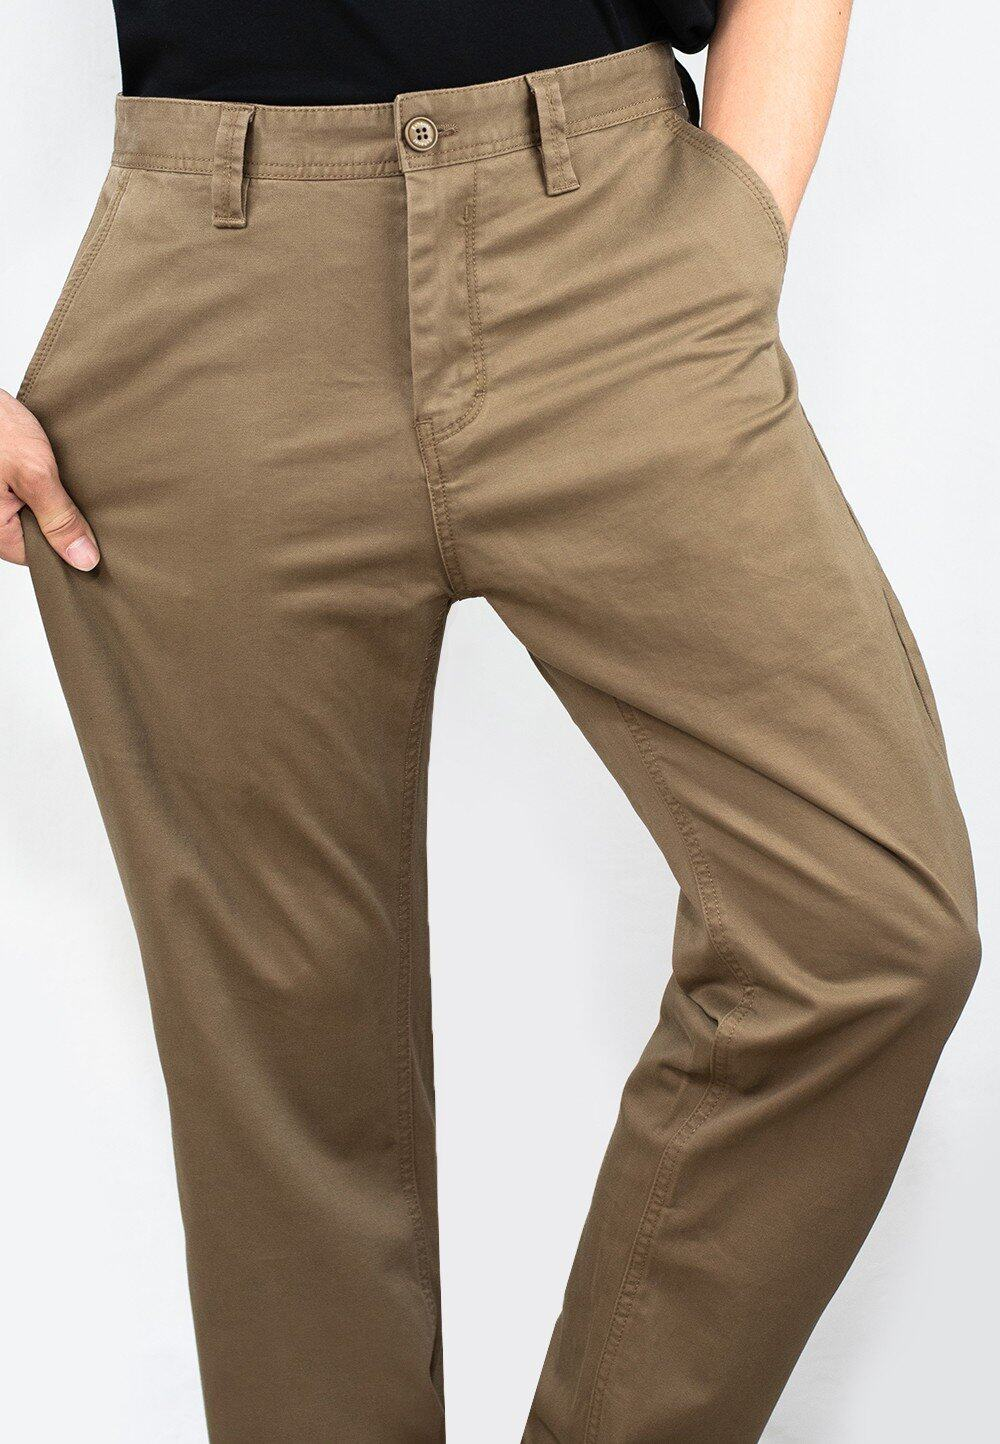 Stretchable Straight Cut Chino Long Pants 713